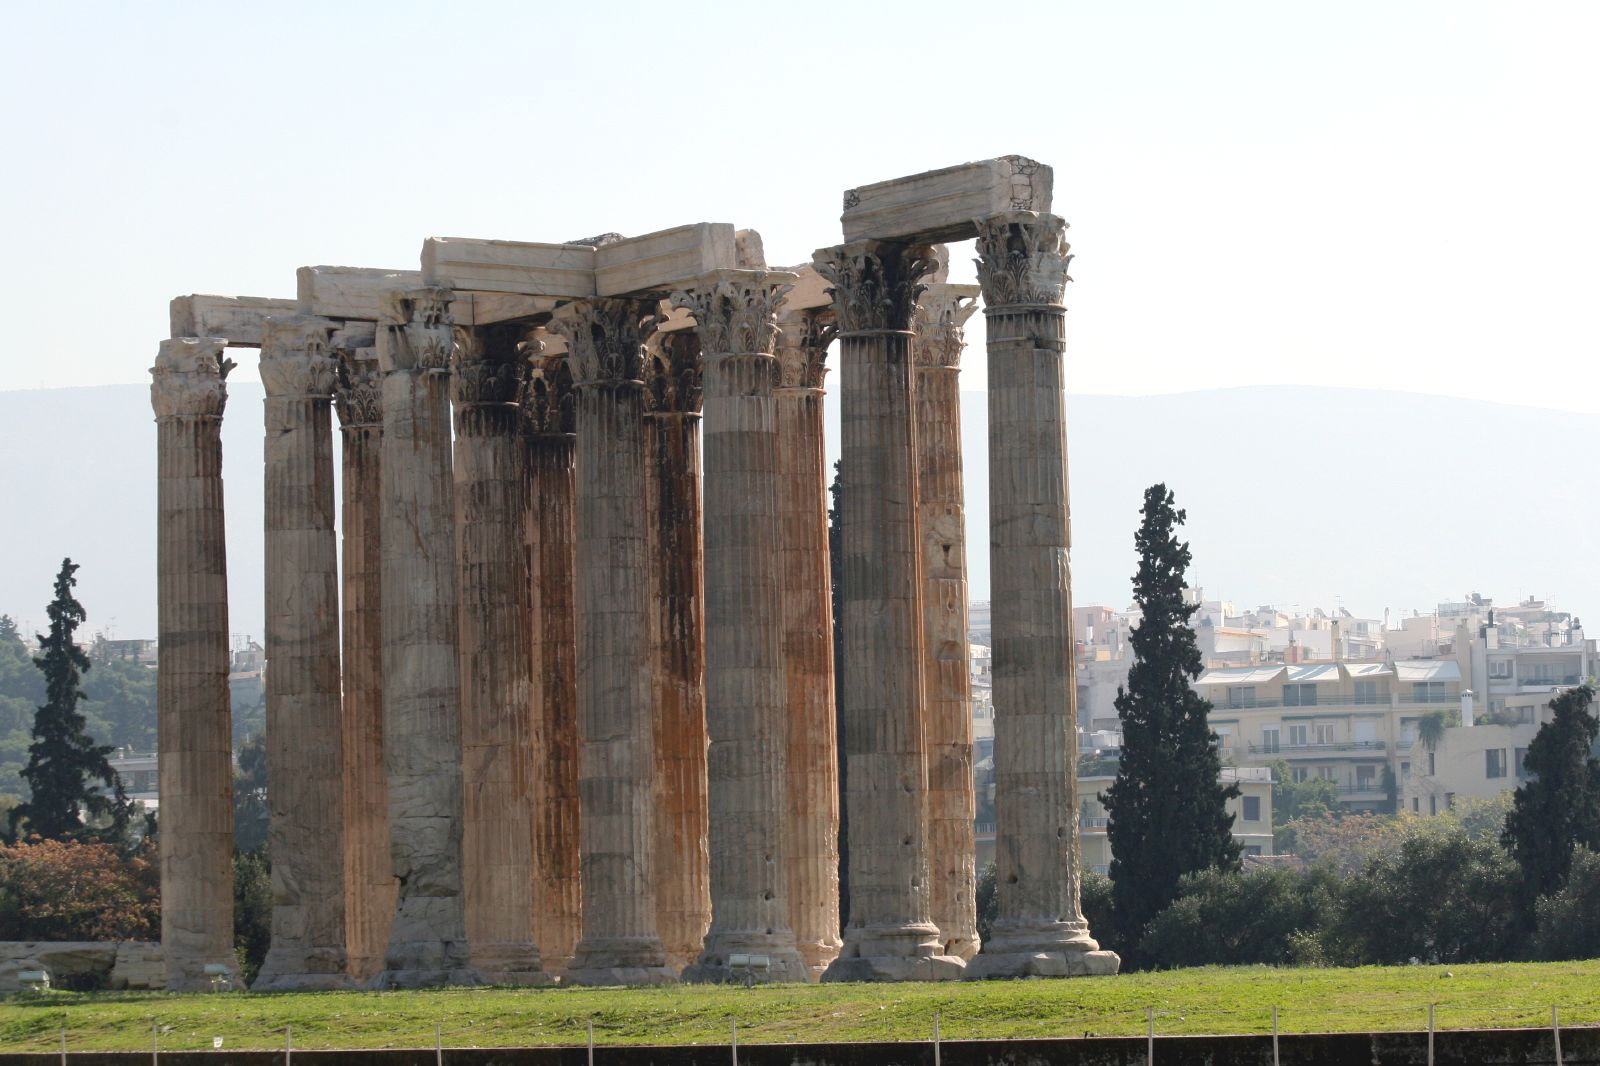 File:Temple of Olympian Zeus also known as the Olympieion.jpg